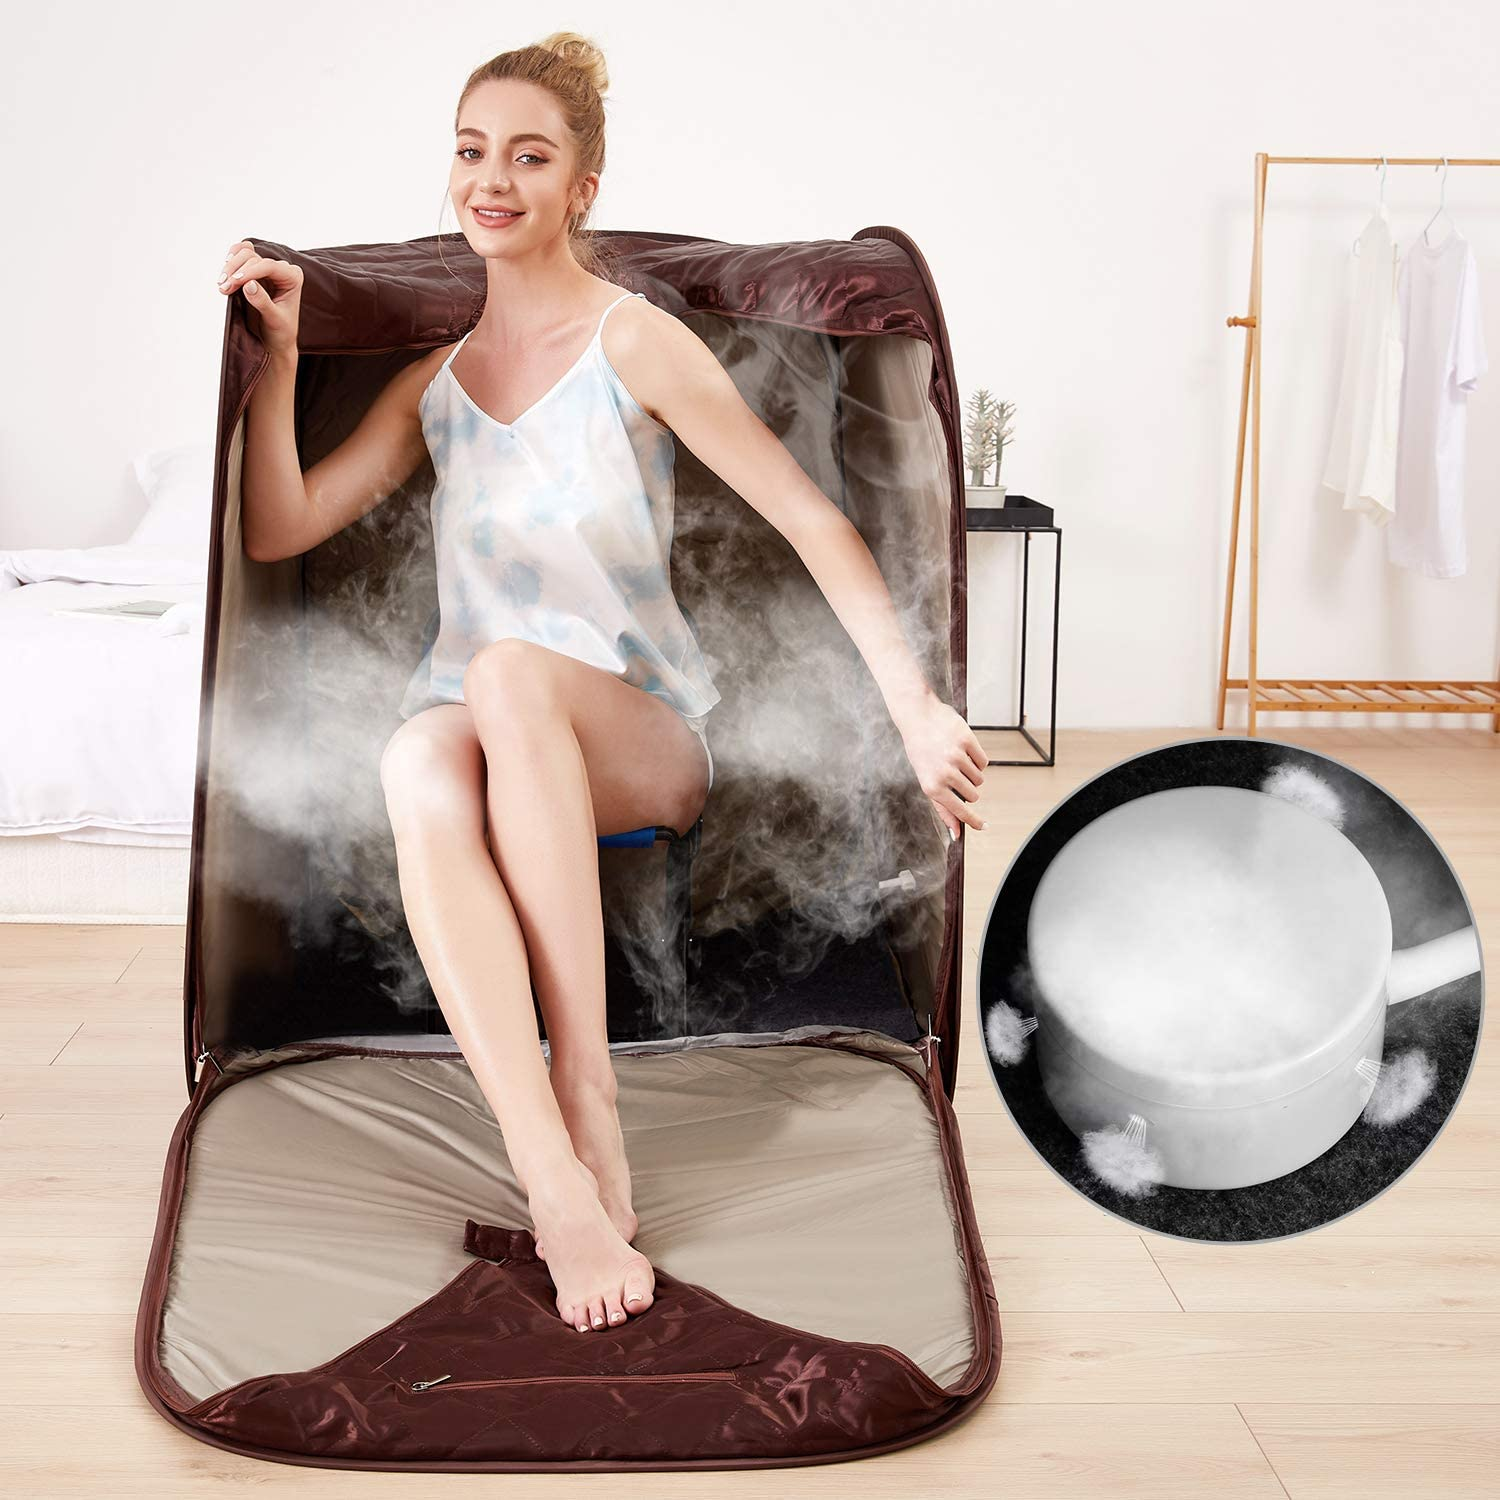 2L Personal Therapeutic Sauna for Weight Loss Detox Relaxation at Home,One Person Sauna with Remote Control,Foldable Chair,Timer Dark Silver OppsDecor Portable Steam Sauna Spa US Plug